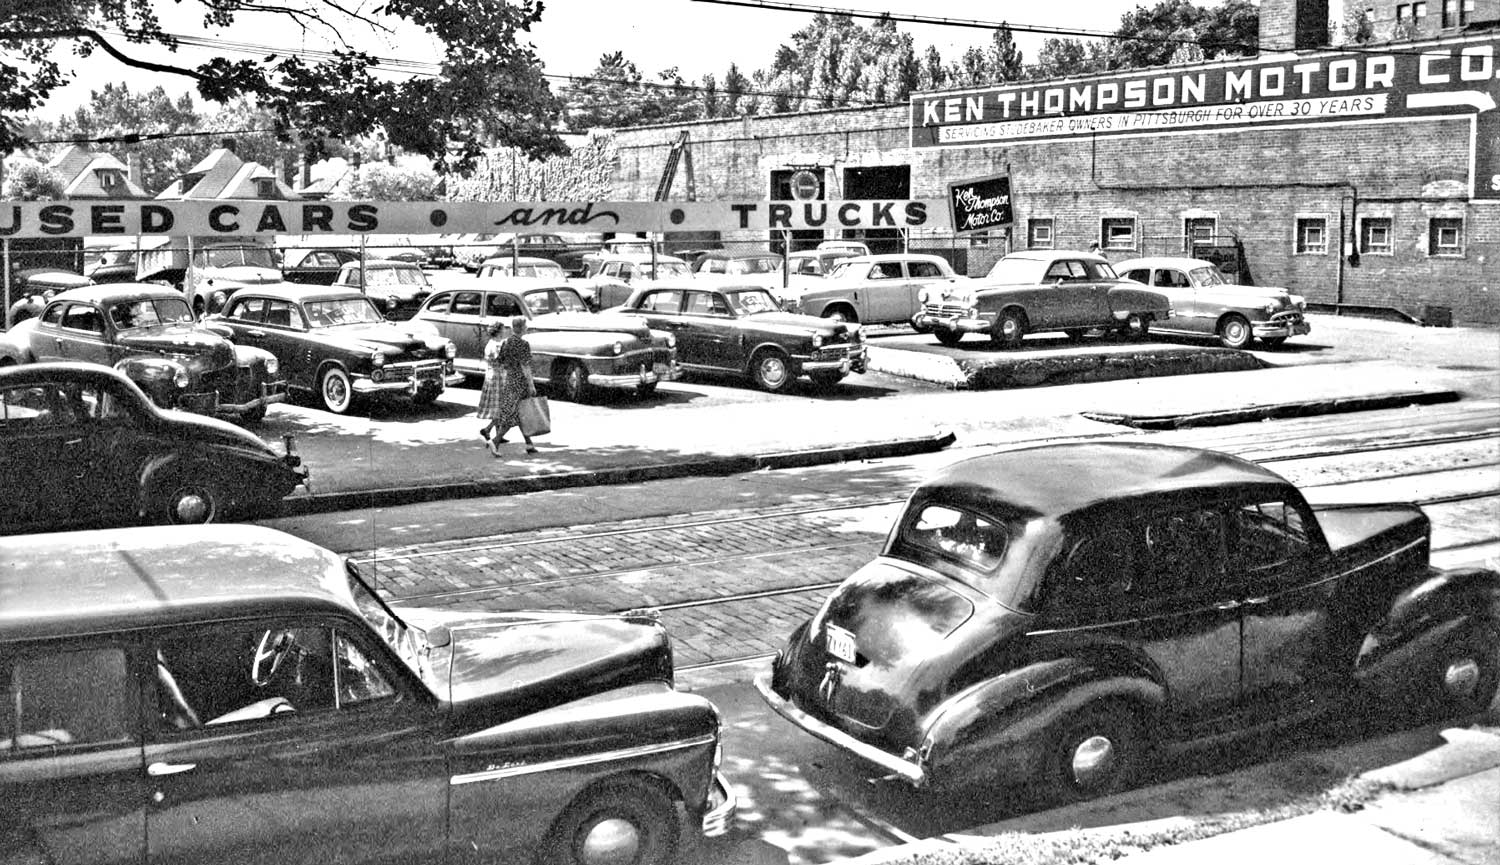 1930s and 1940s used cars and trucks offered for sale | The Old Motor